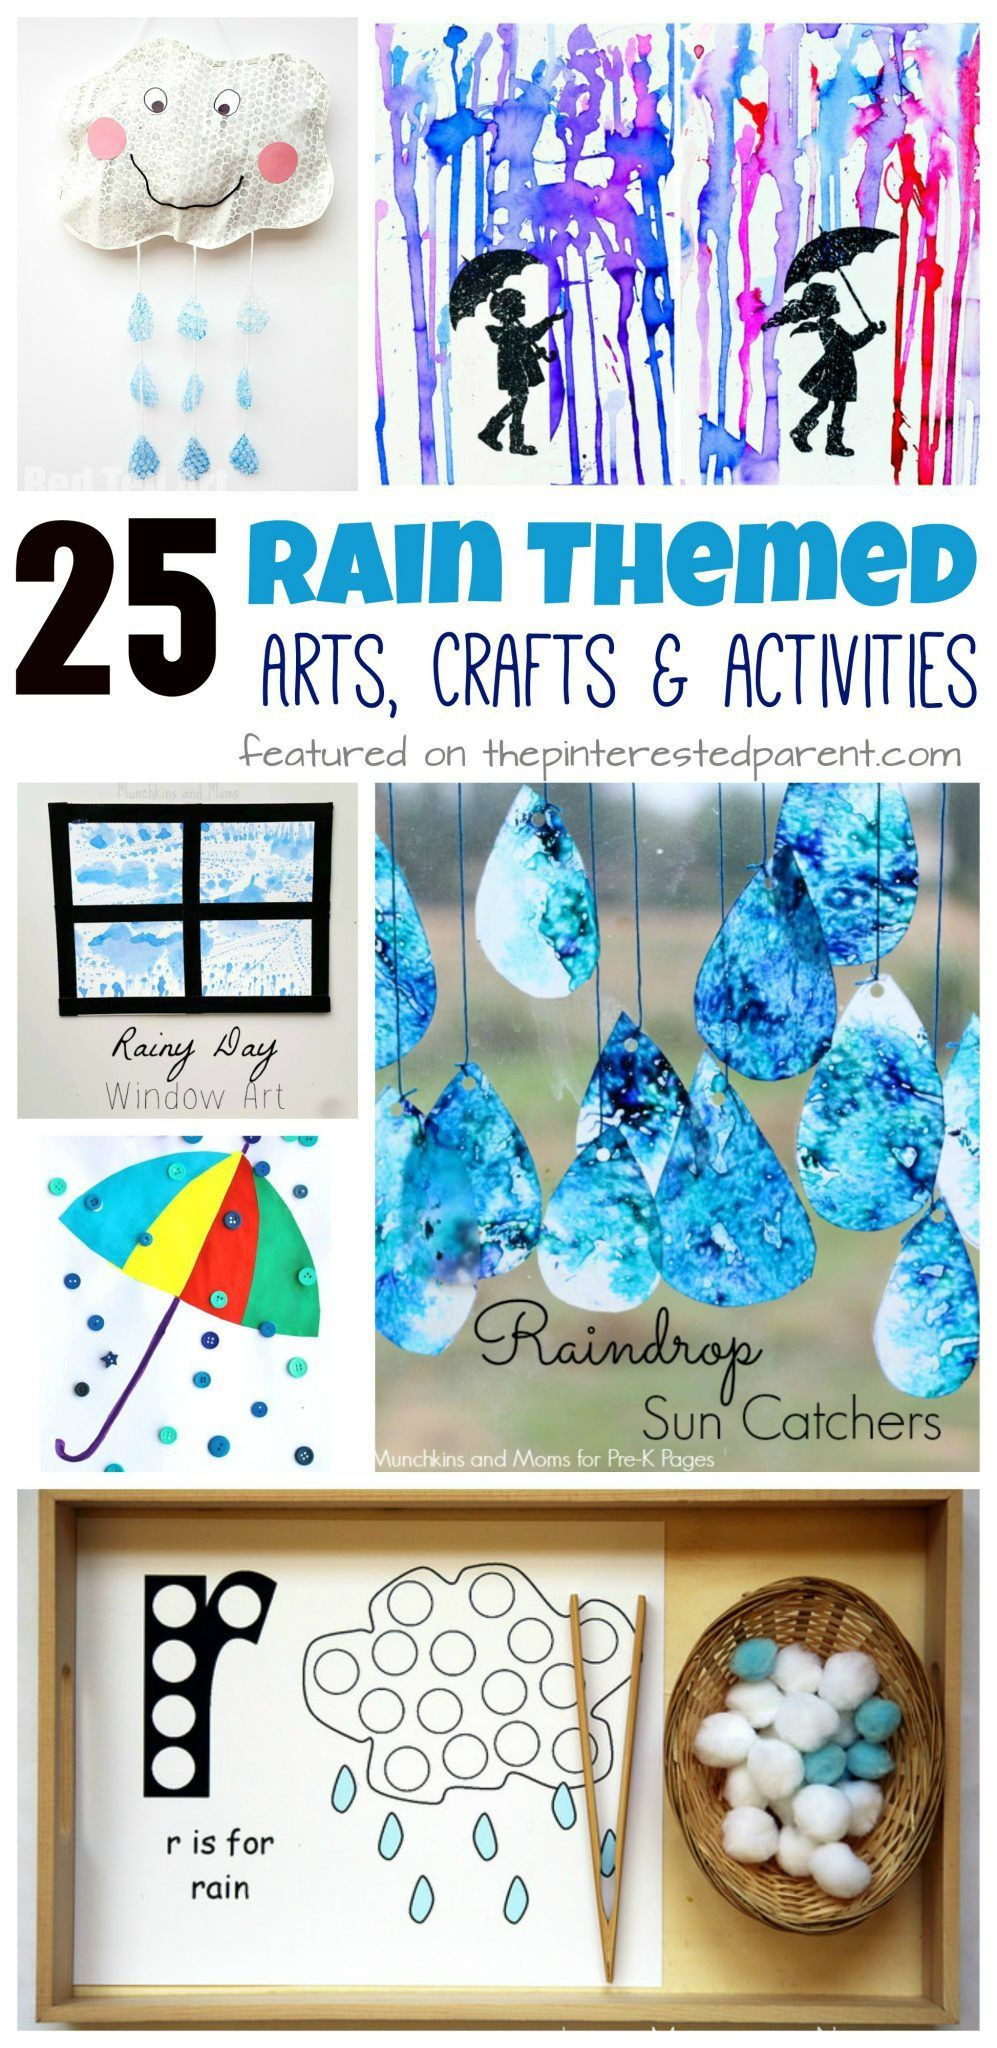 Best ideas about Preschoolers Arts And Crafts Ideas . Save or Pin 25 Rain themed arts crafts and activities for the spring Now.